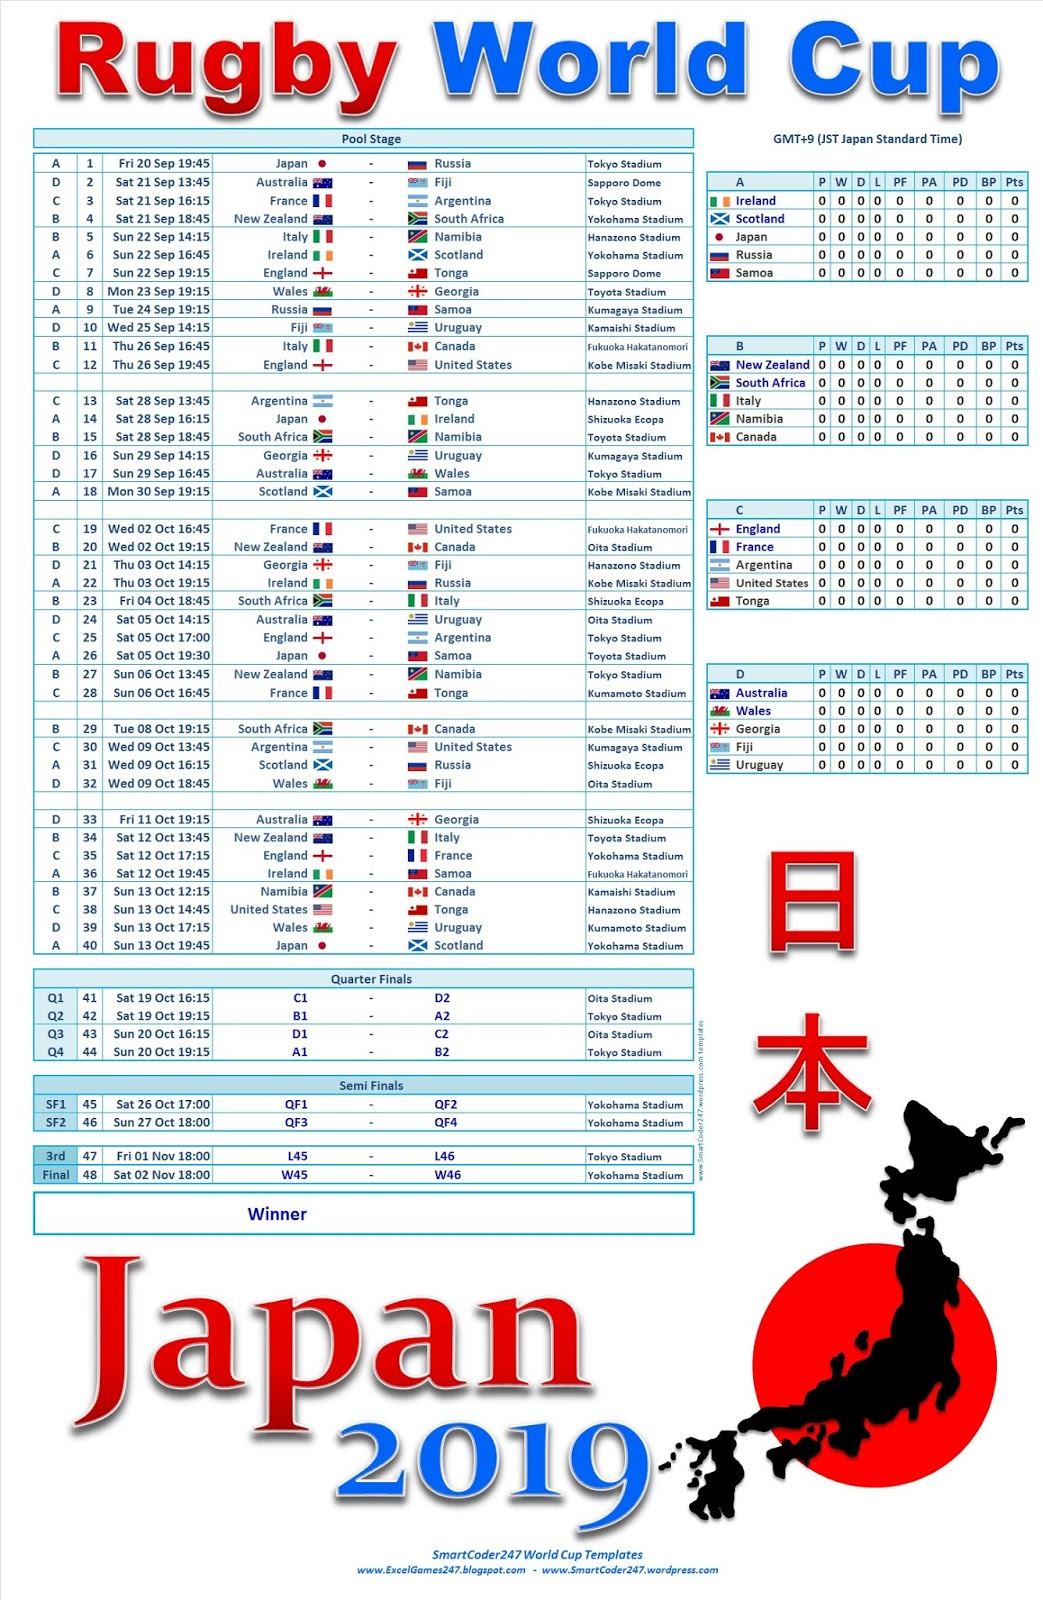 picture regarding Printable World Cup Brackets titled Smartcoder 247 - Japan 2019 Rugby International Cup Wall Charts and